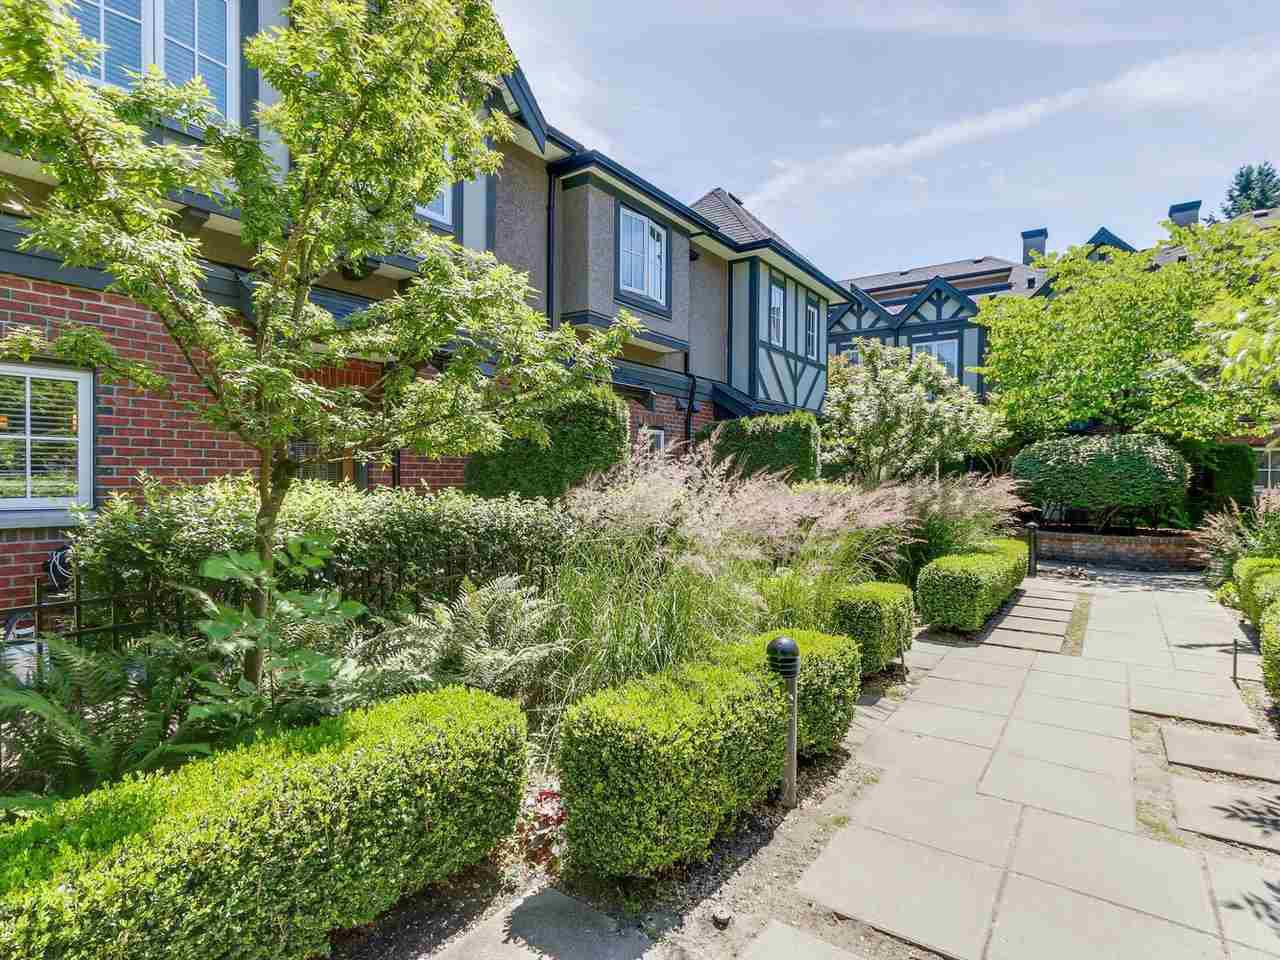 """Photo 19: Photos: 6181 OAK Street in Vancouver: South Granville Townhouse for sale in """"CARRINGTON"""" (Vancouver West)  : MLS®# R2295526"""